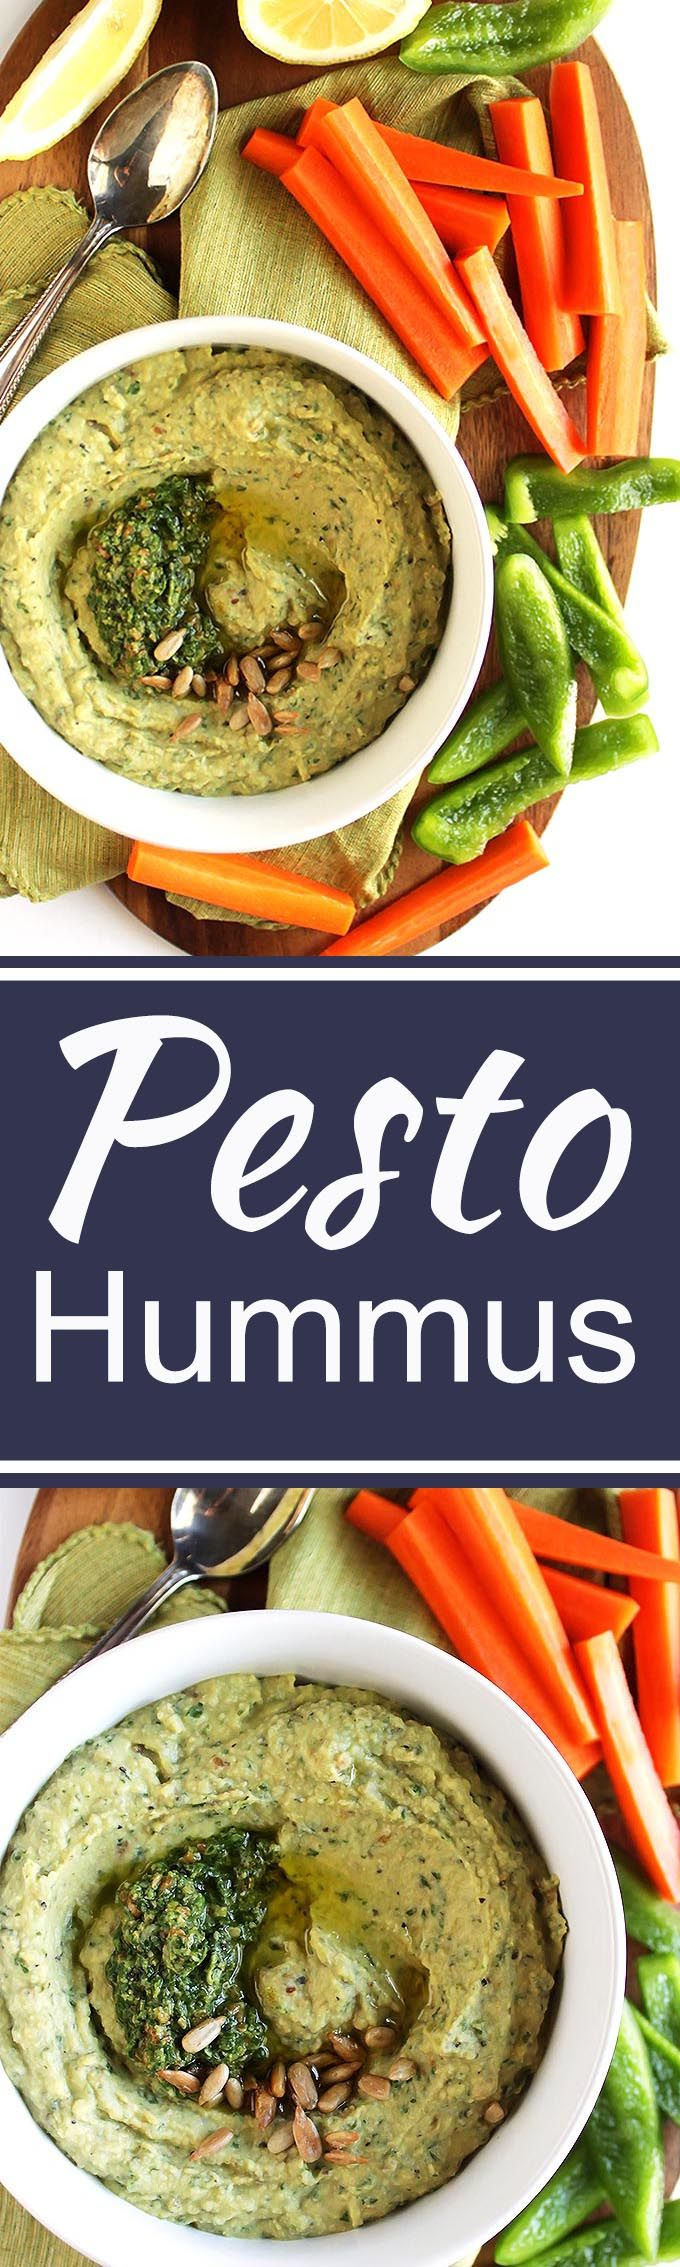 Pesto Hummus - Creamy hummus combined with fresh, zesty basil. This recipe is EASY to make and healthy to eat! Serve with veggies or crackers! Vegetarian/ Gluten Free.